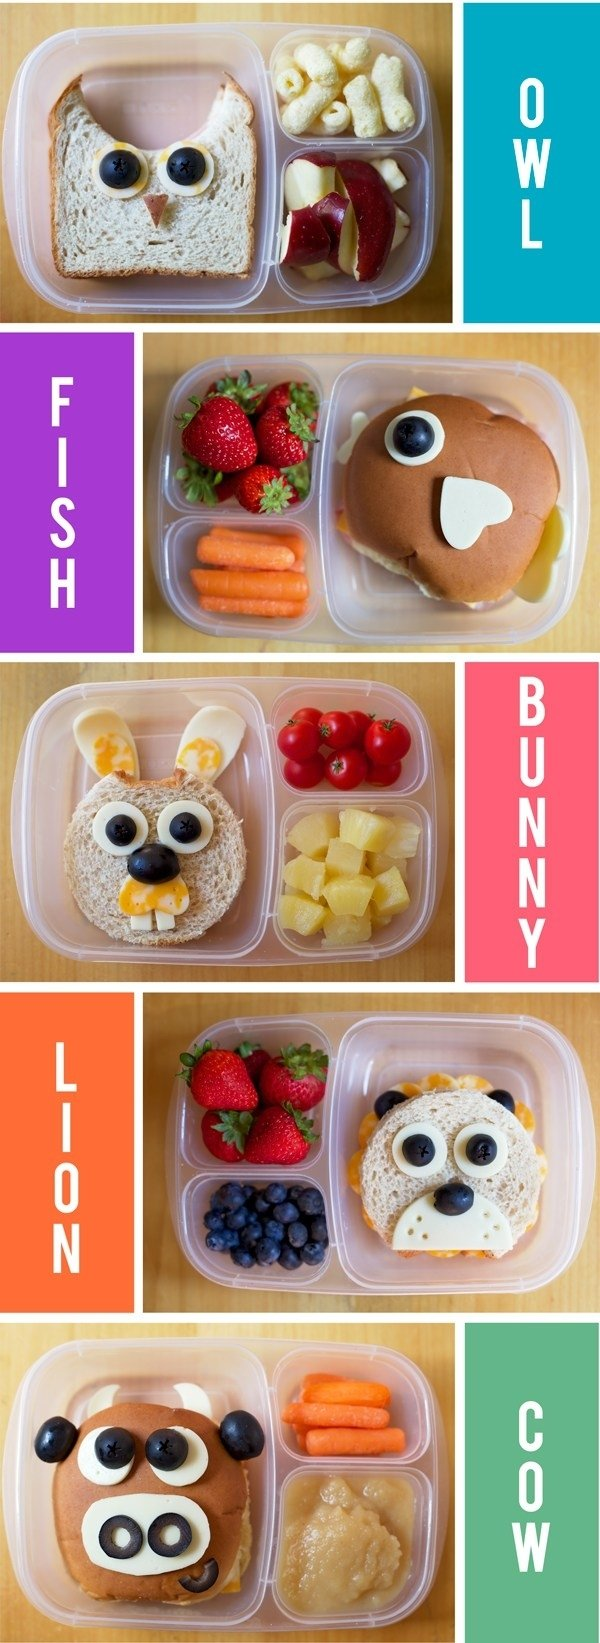 10 Cute Toddler Lunch Ideas For School the best school lunch ideas for kids that are fun and easy 7 2020